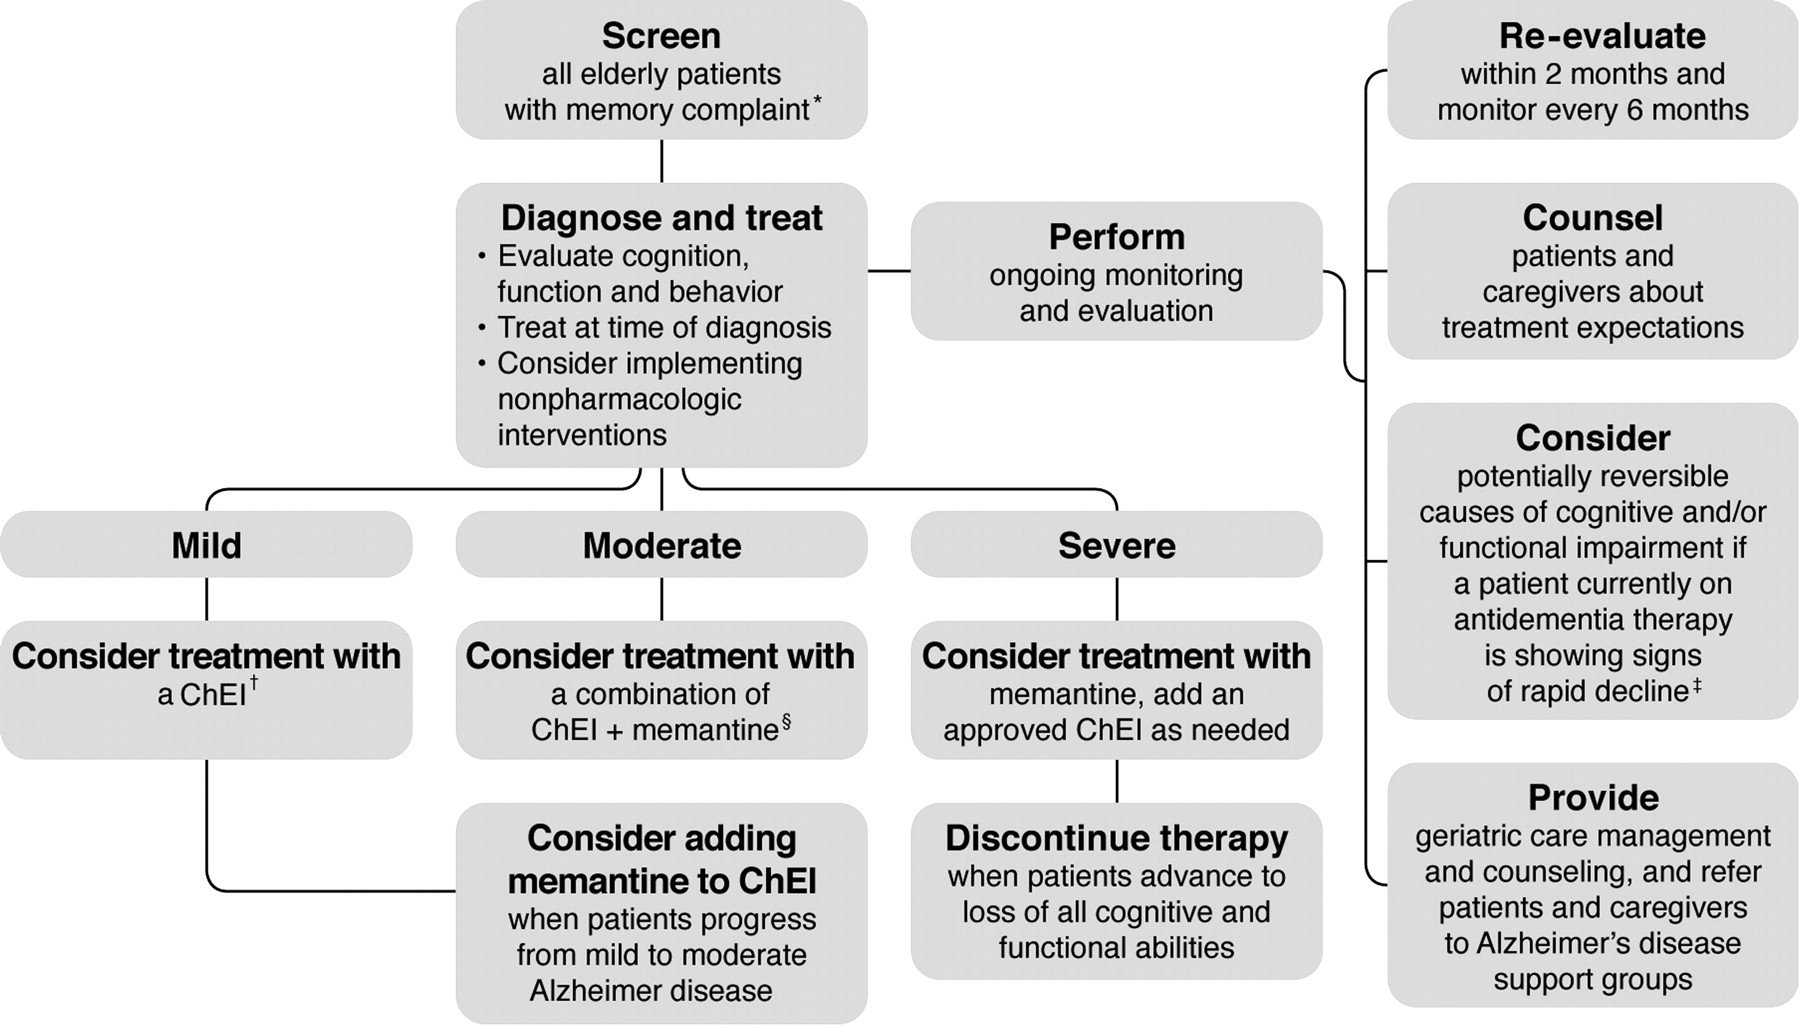 Treatment Of Memory And Orientation Disorders In The Elderly?